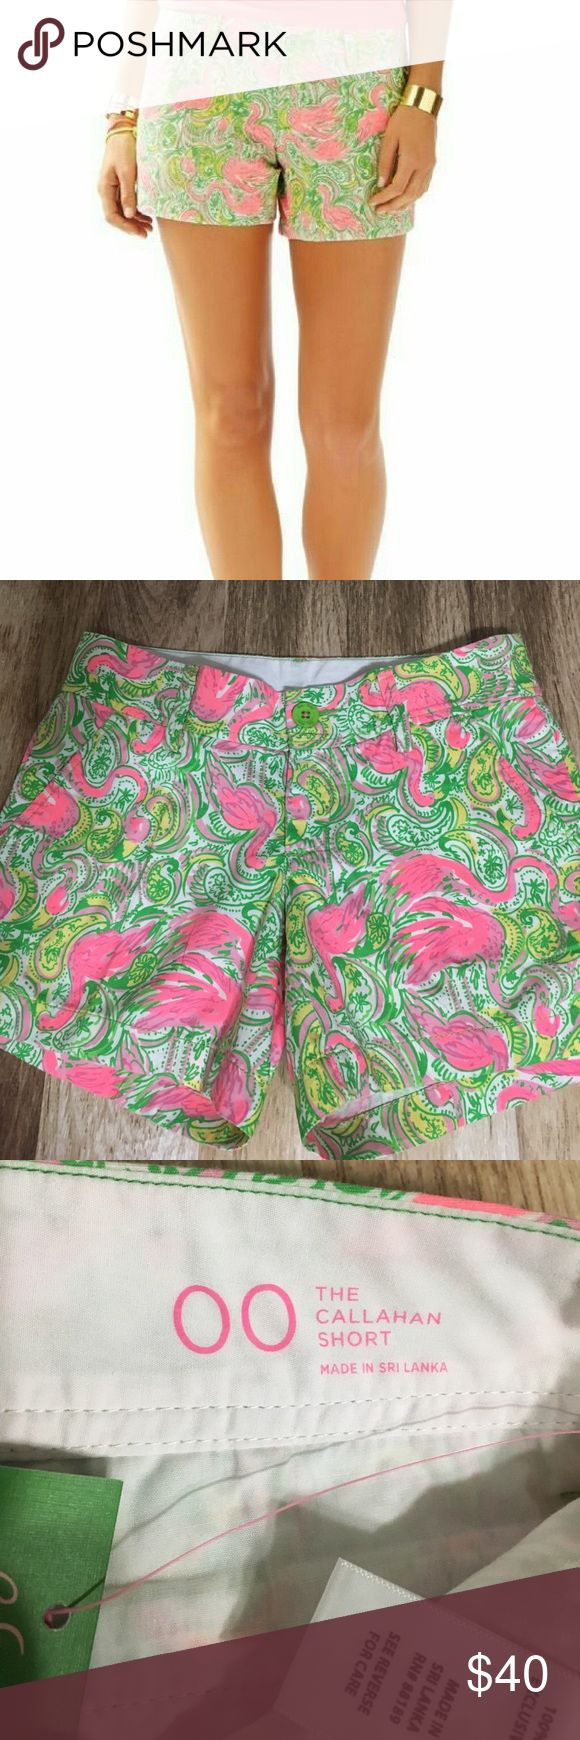 Lilly Pulitzer Callahan Shorts in Hot Wings If you have an affinity for flamingos you MUST own these shorts from Lilly Pulitzer! In the fun paisley print Hot Wings from the Spring 2015 collection, great with a crisp white tunic or a hot pink blouse! Size 00, NWT, never worn. Cover photo courtesy of lillypulitzer.com.  🚫TRADES🚫 🚫OFFLINE TRANSACTIONS🚫  ✅BUNDLES✅ ✅REASONABLE OFFERS✅  Happy Poshing! 😄 Lilly Pulitzer Shorts